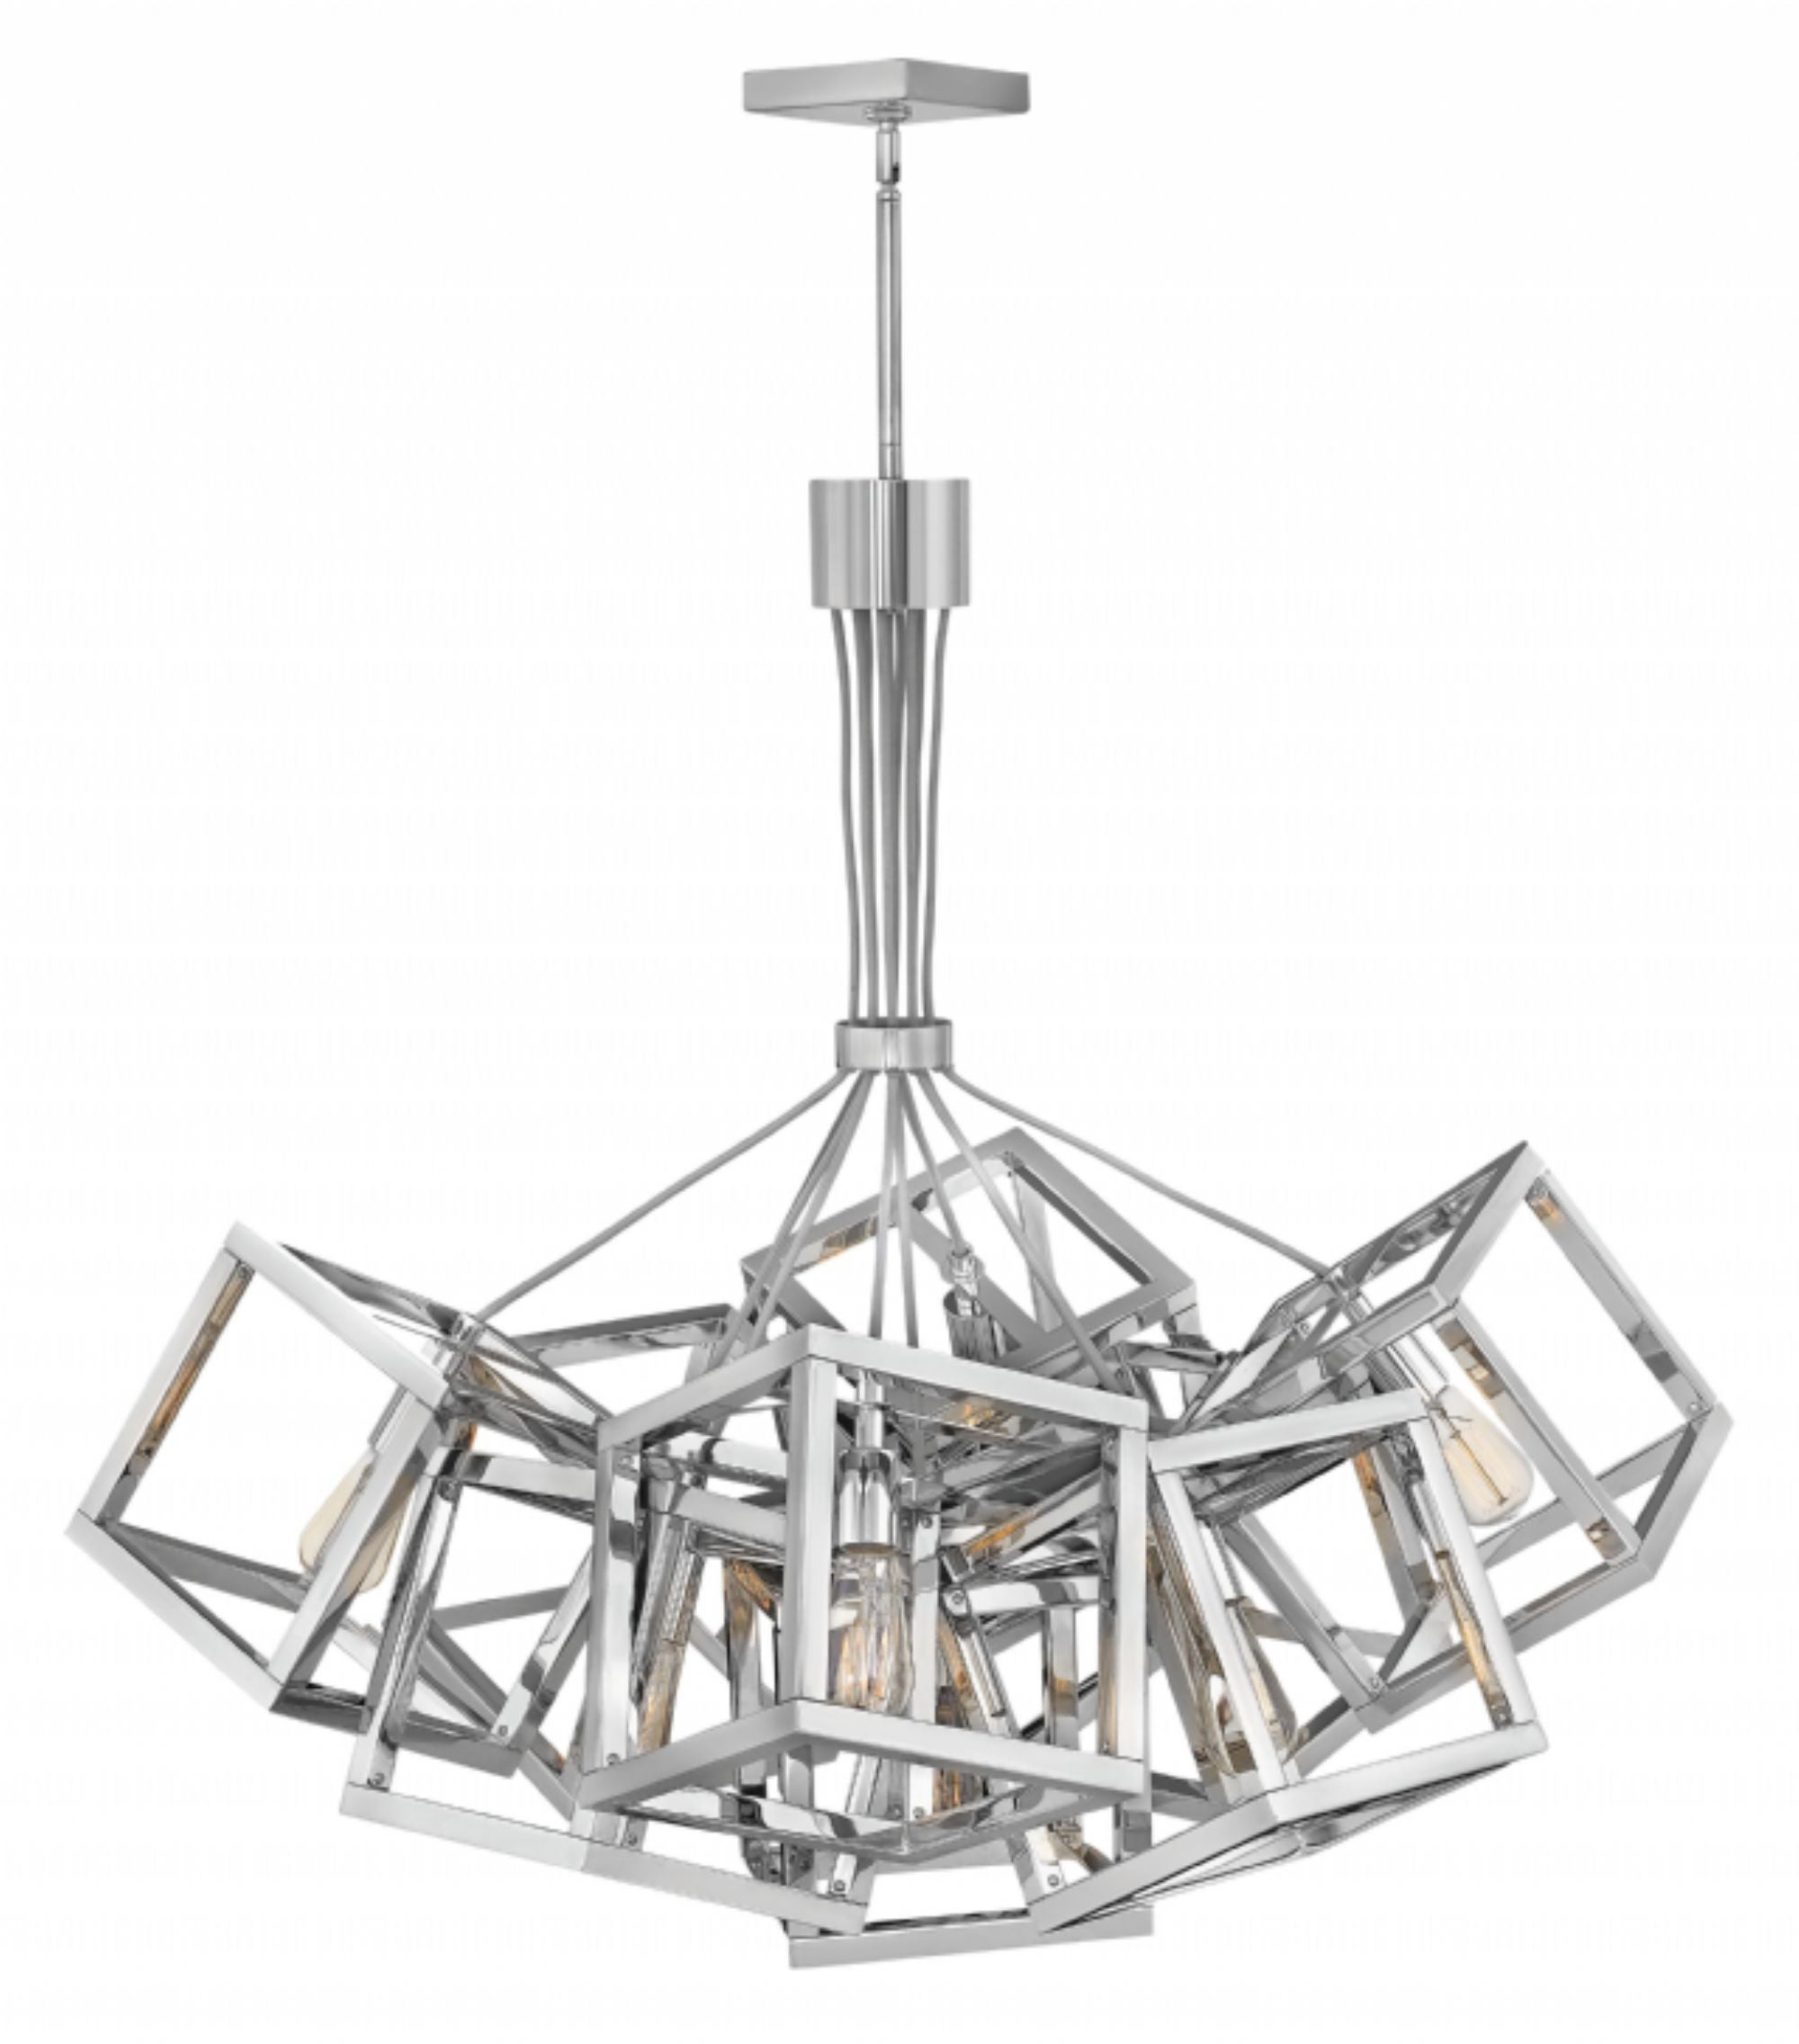 Ensemble 9 Light Chandelier in Polished Nickel by Hinkley Lighting FR42445PN